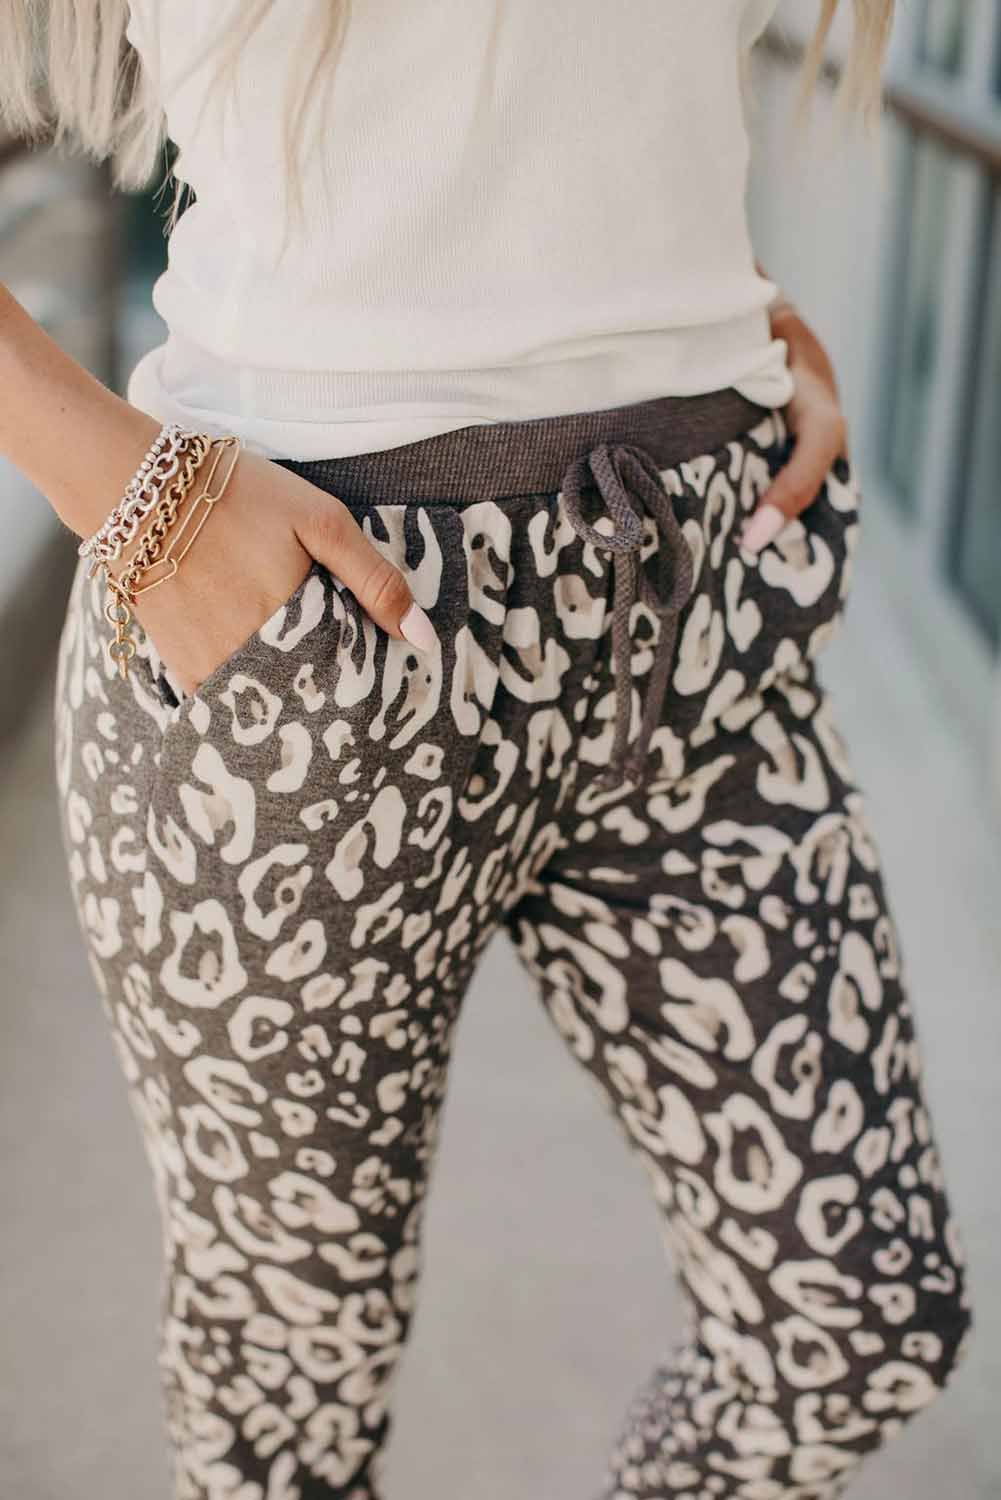 Leopard Print Casual Pants Women's Autumn New Style Tether Belt Drawstring Ankle Pants  NSSI2319